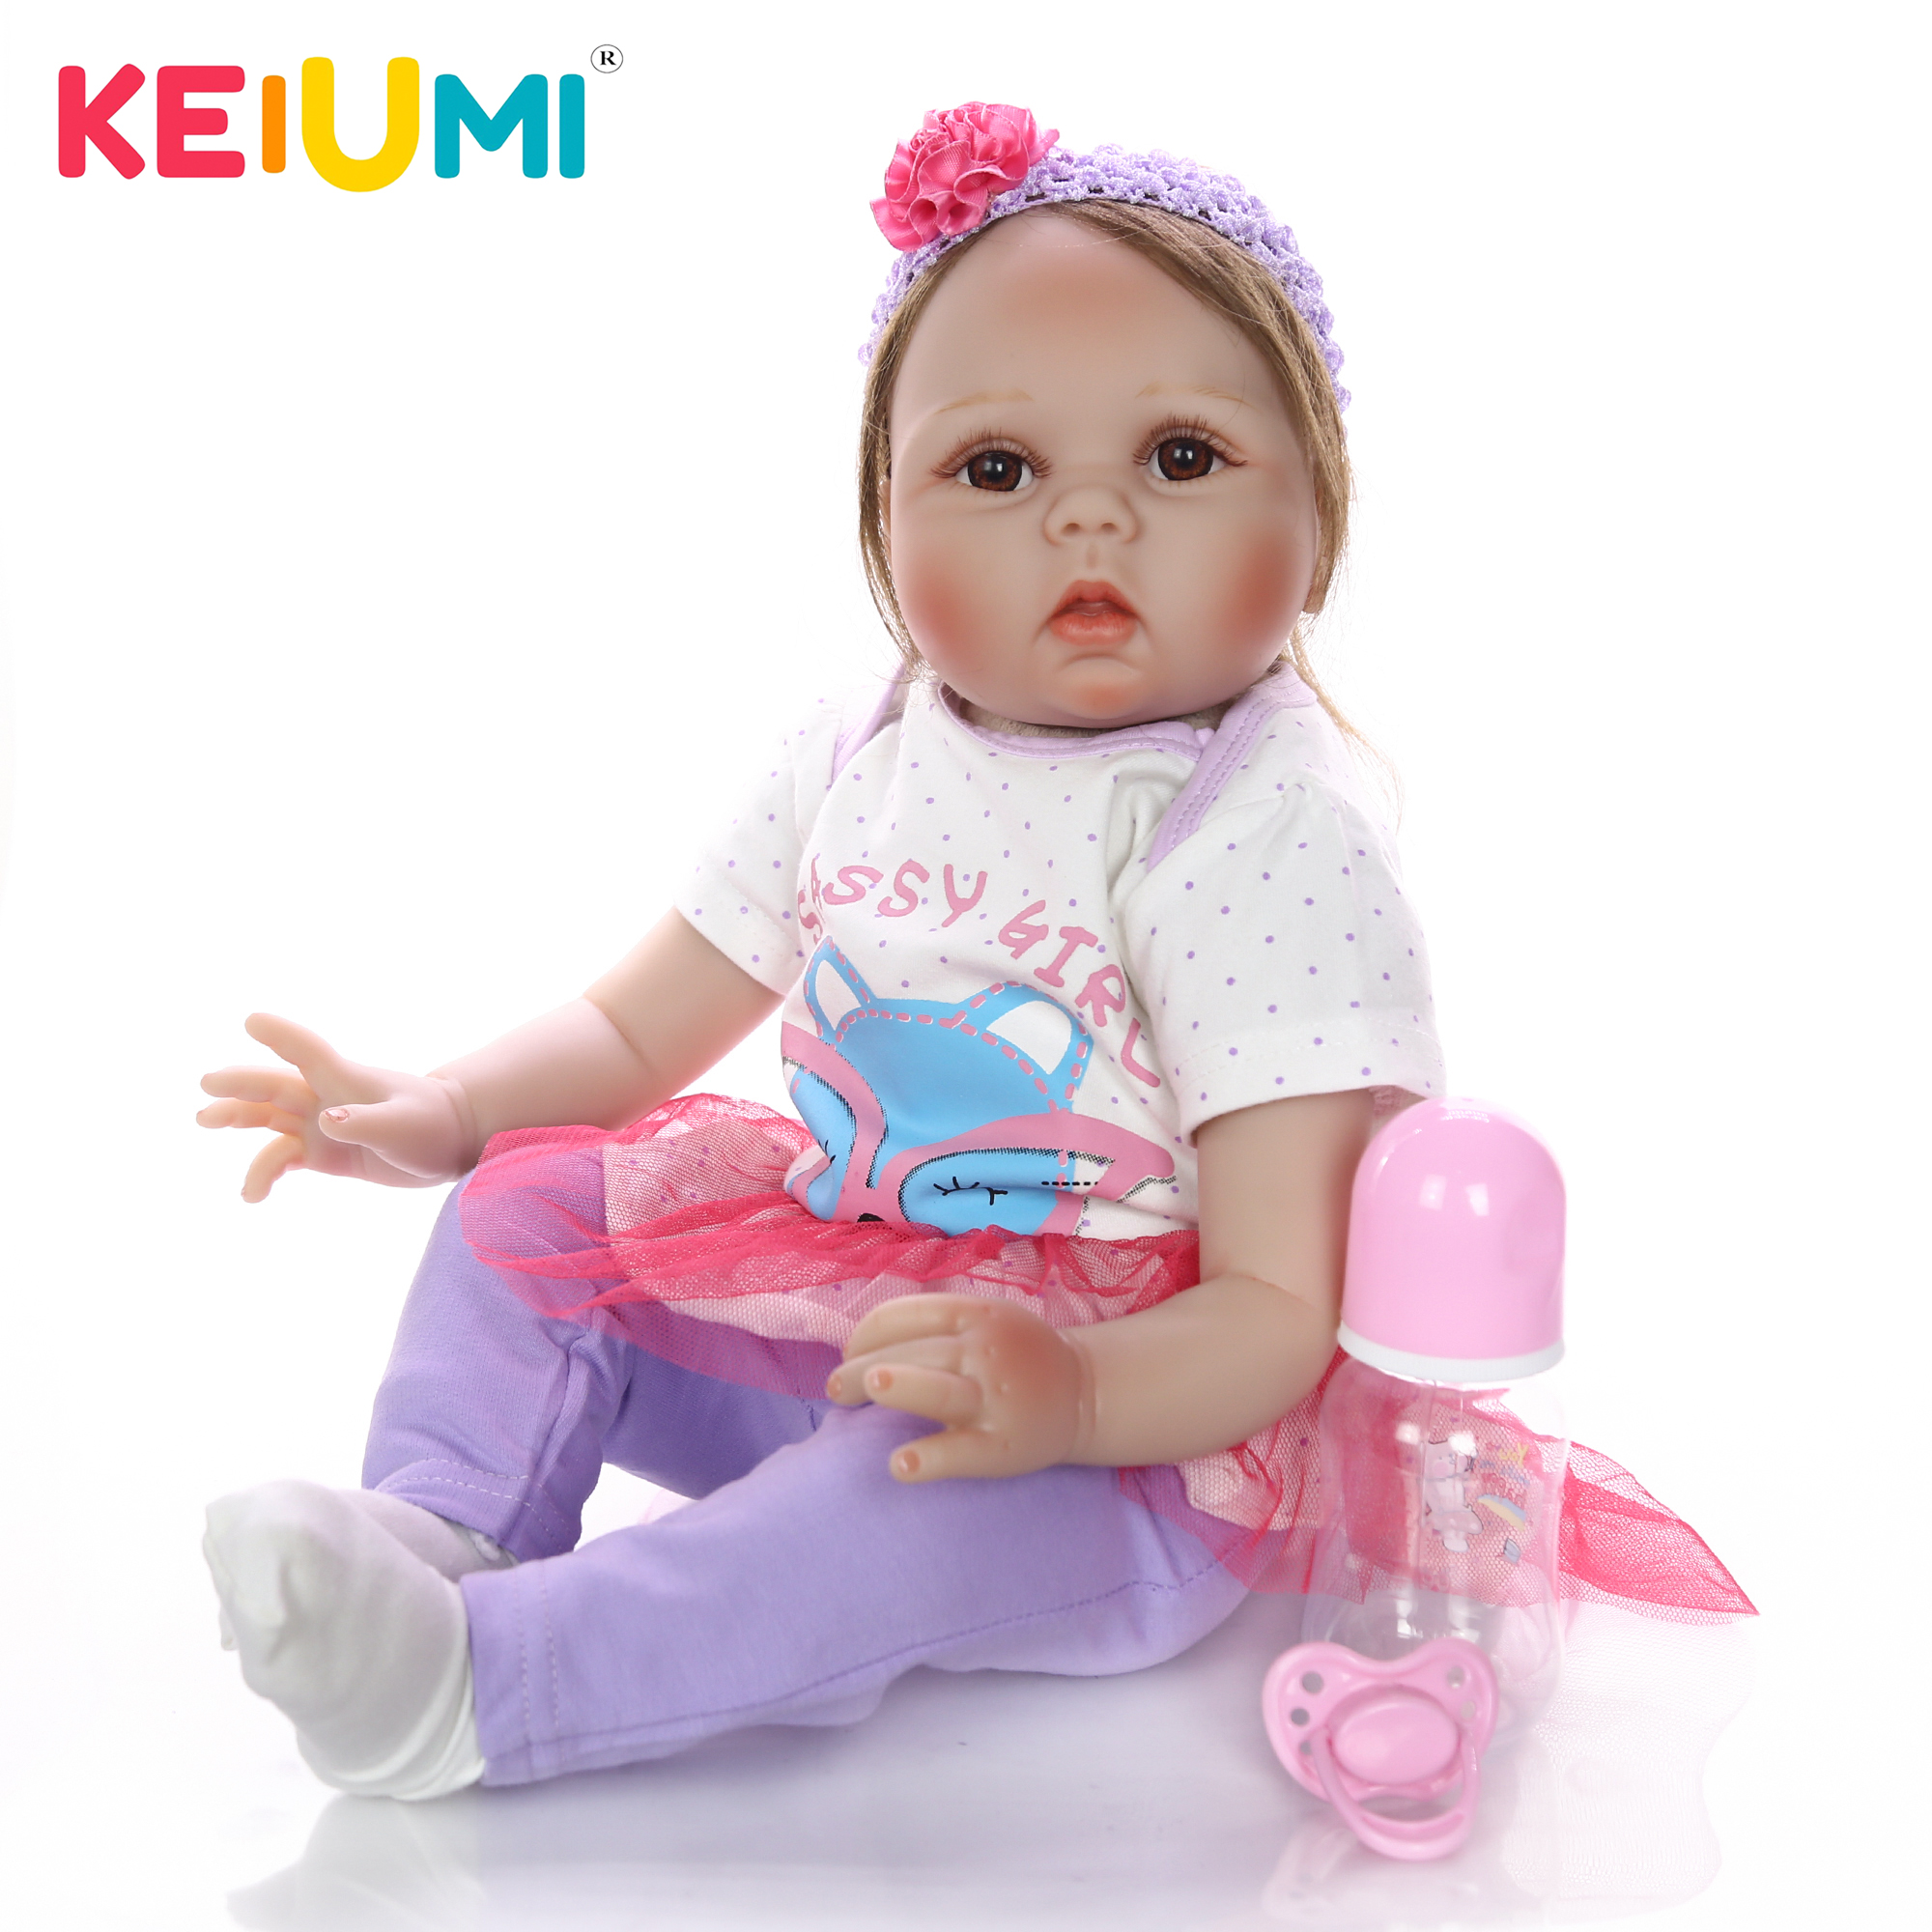 New Arrival 22 Inch Soft Silicone Reborn Baby Girl Doll 55 cm Lifelike Baby Doll With